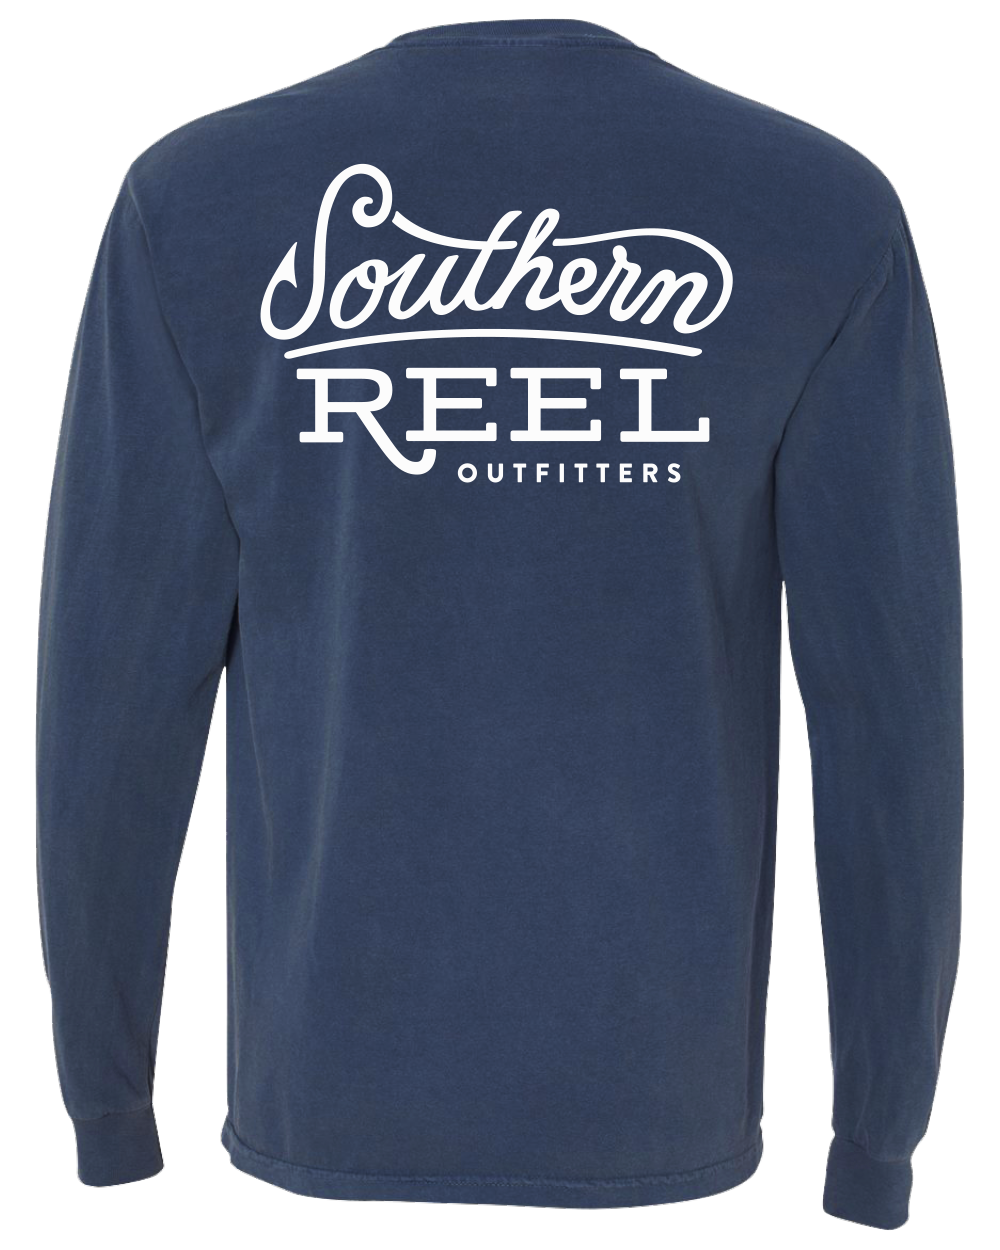 SOUTHERN REEL OUTFITTERS LOGO LONG SLEEVE TEE